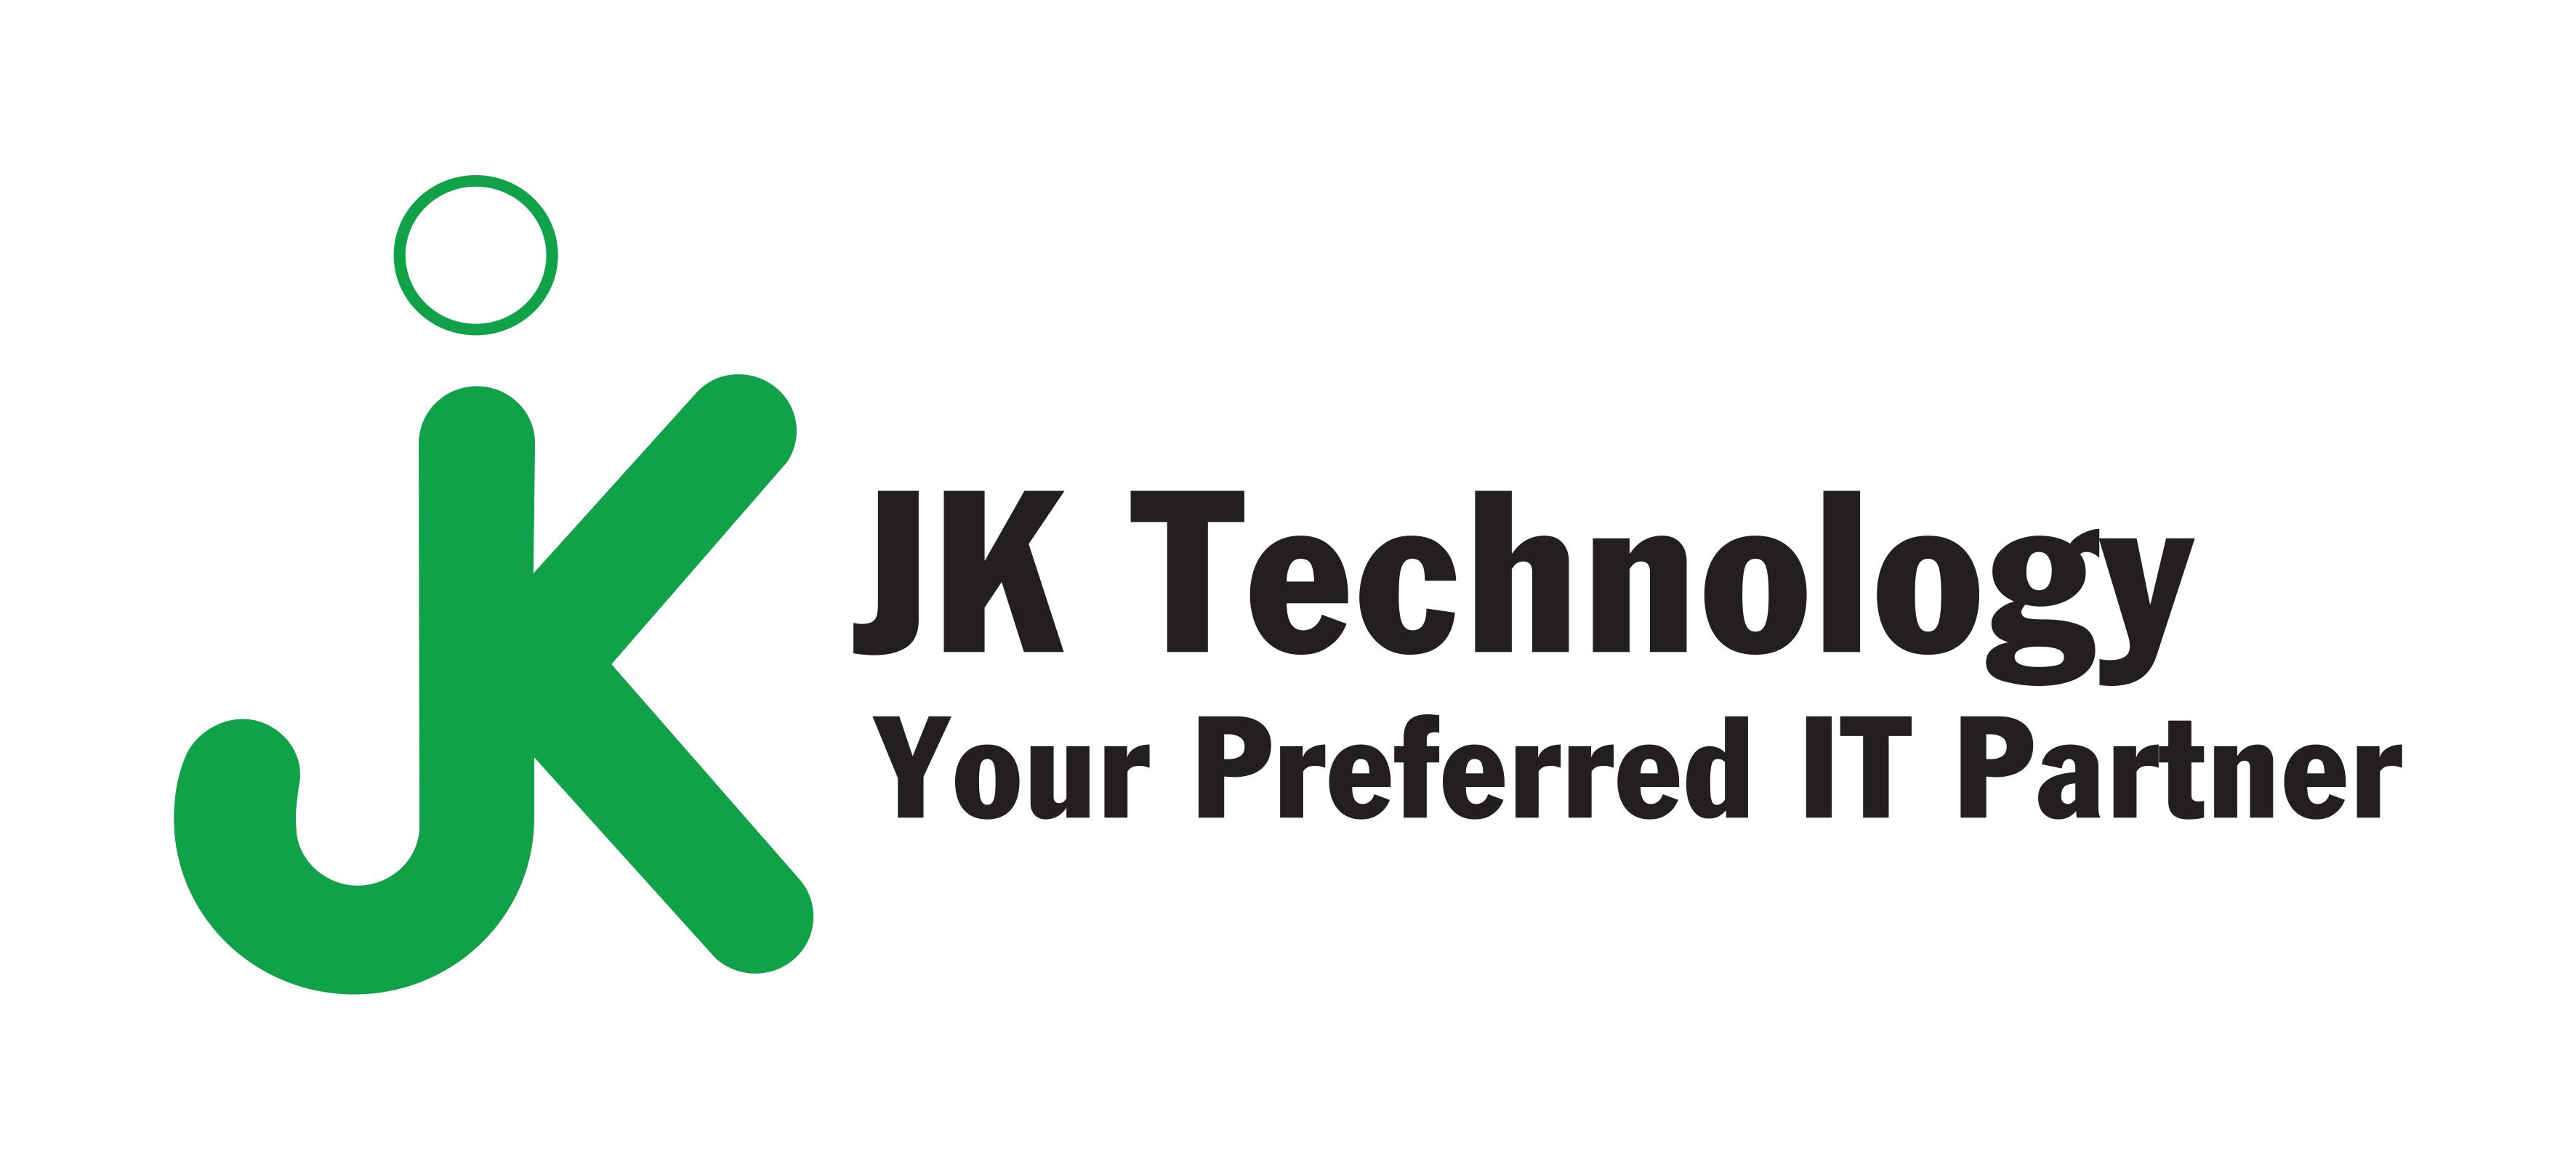 JK Technology